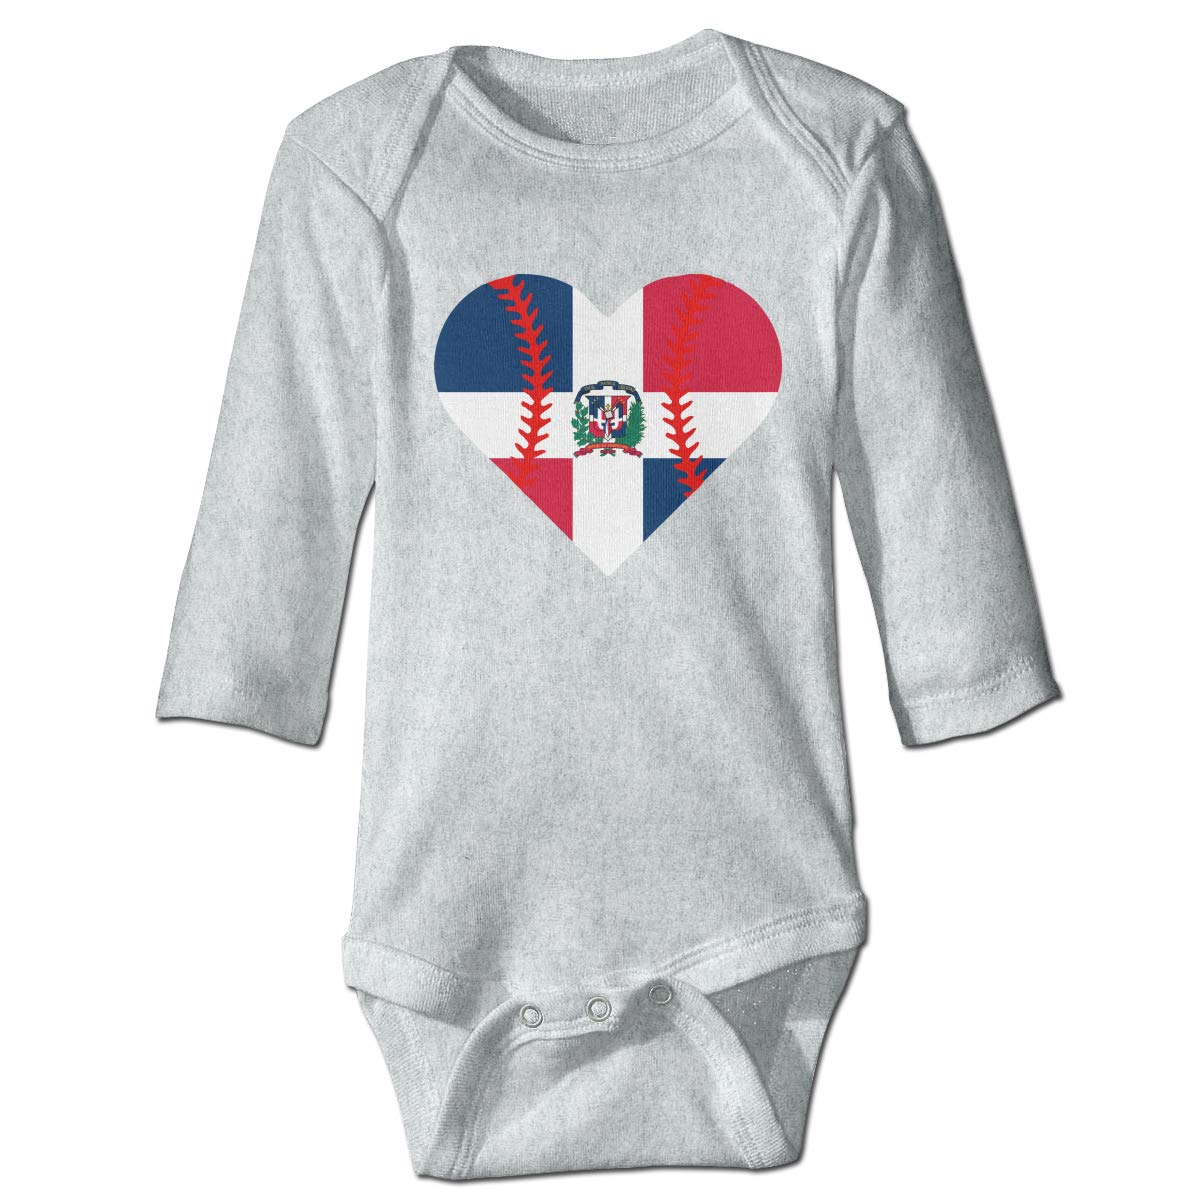 A14UBP Newborn Baby Boys Girls Long Sleeve Climb Jumpsuit Dominican Republic Flag Baseball Heart Playsuit Outfit Clothes